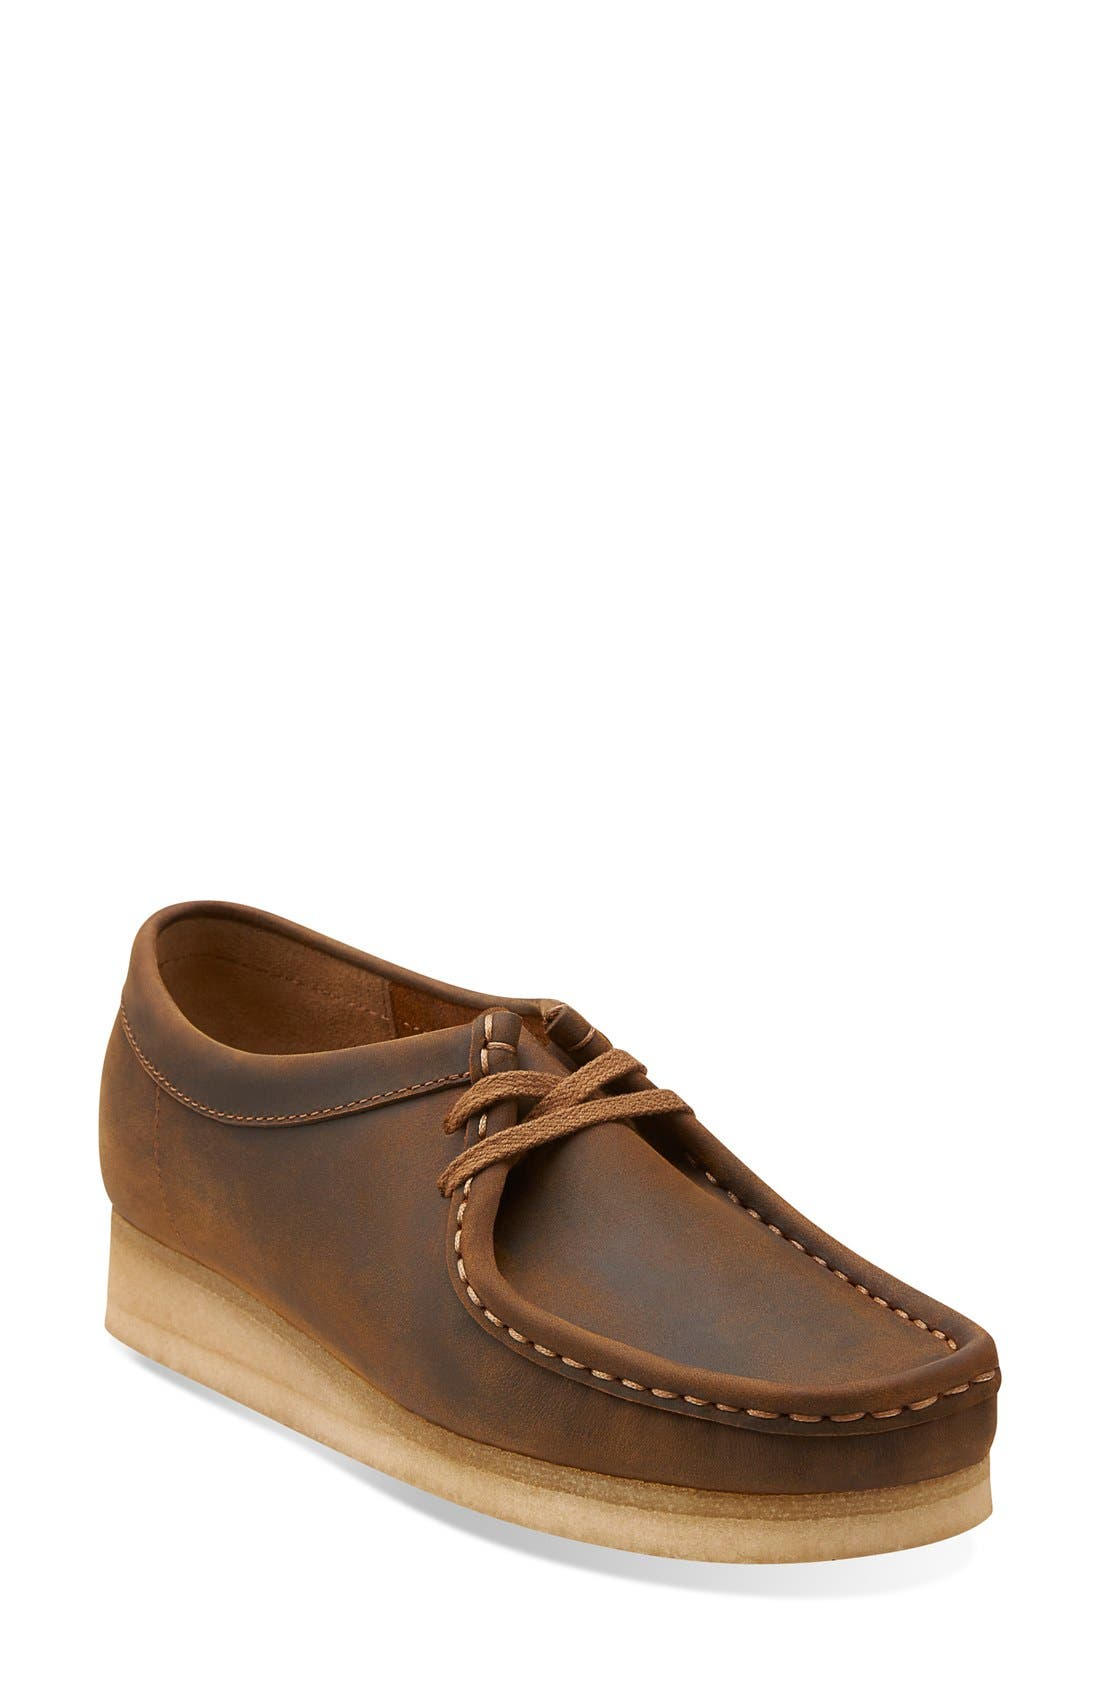 Wallabee Chukka Boot,                             Main thumbnail 1, color,                             BEESWAX LEATHER